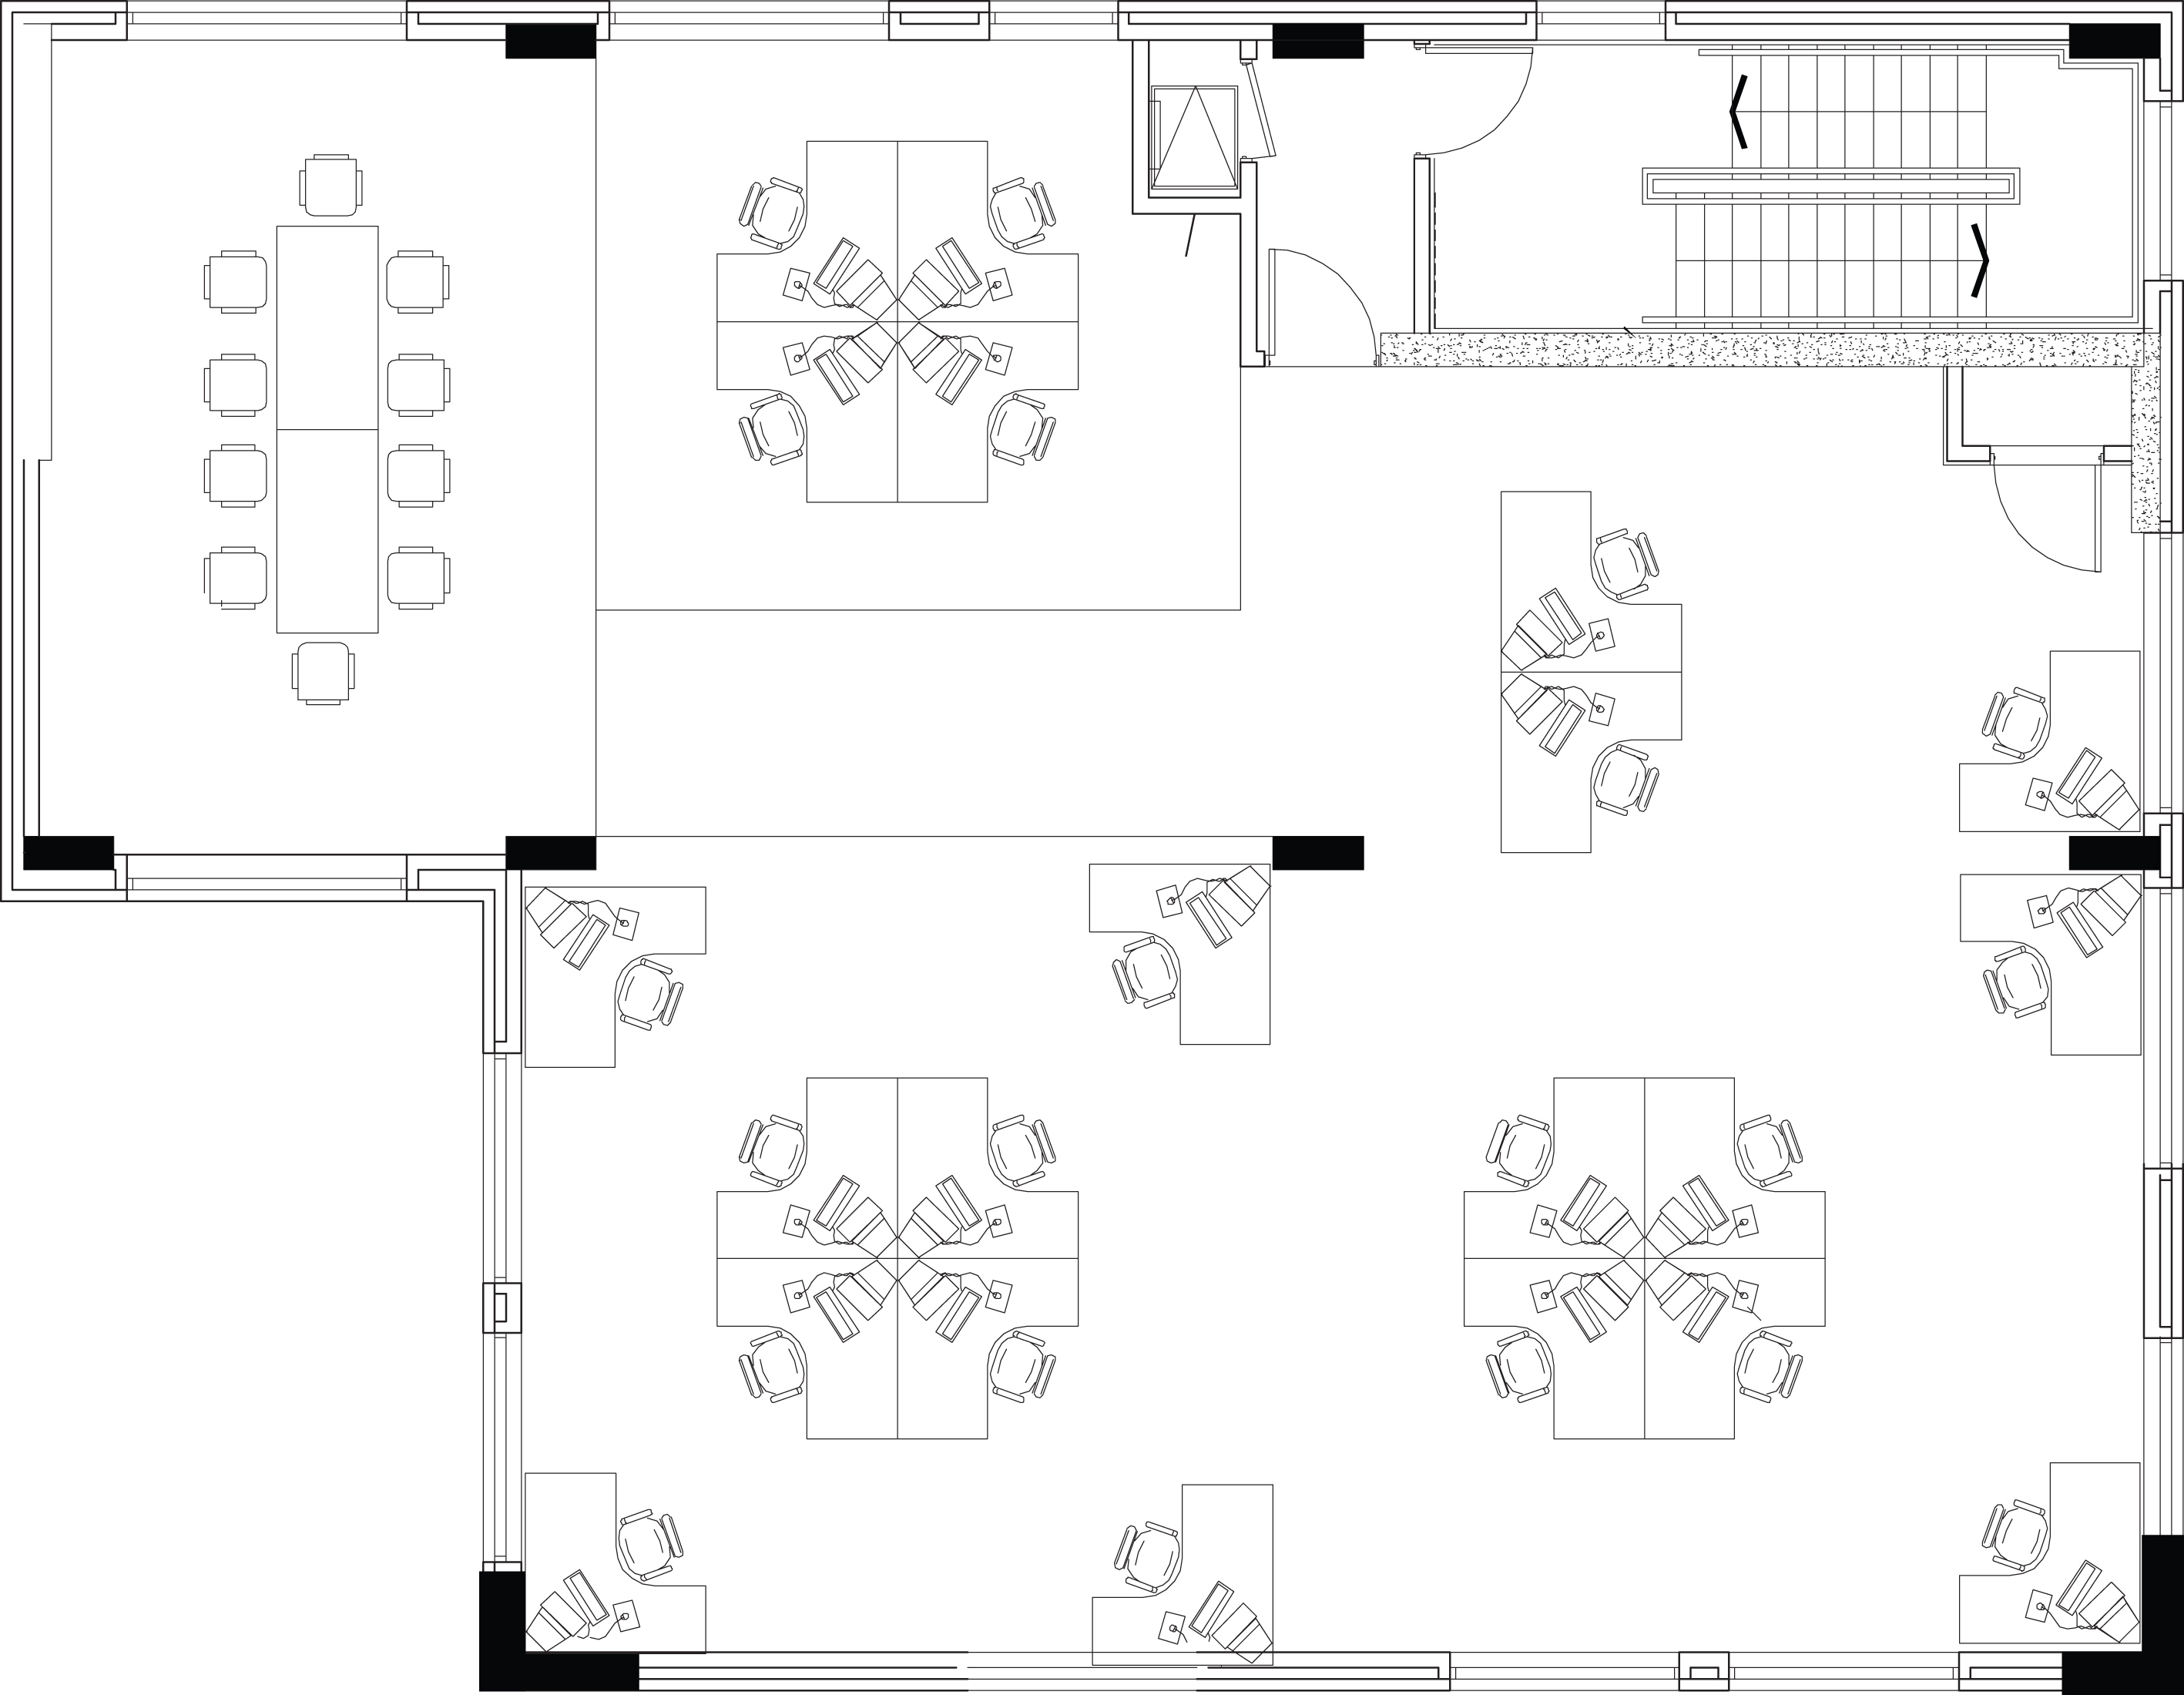 floor space drawings of a commercial business workspace